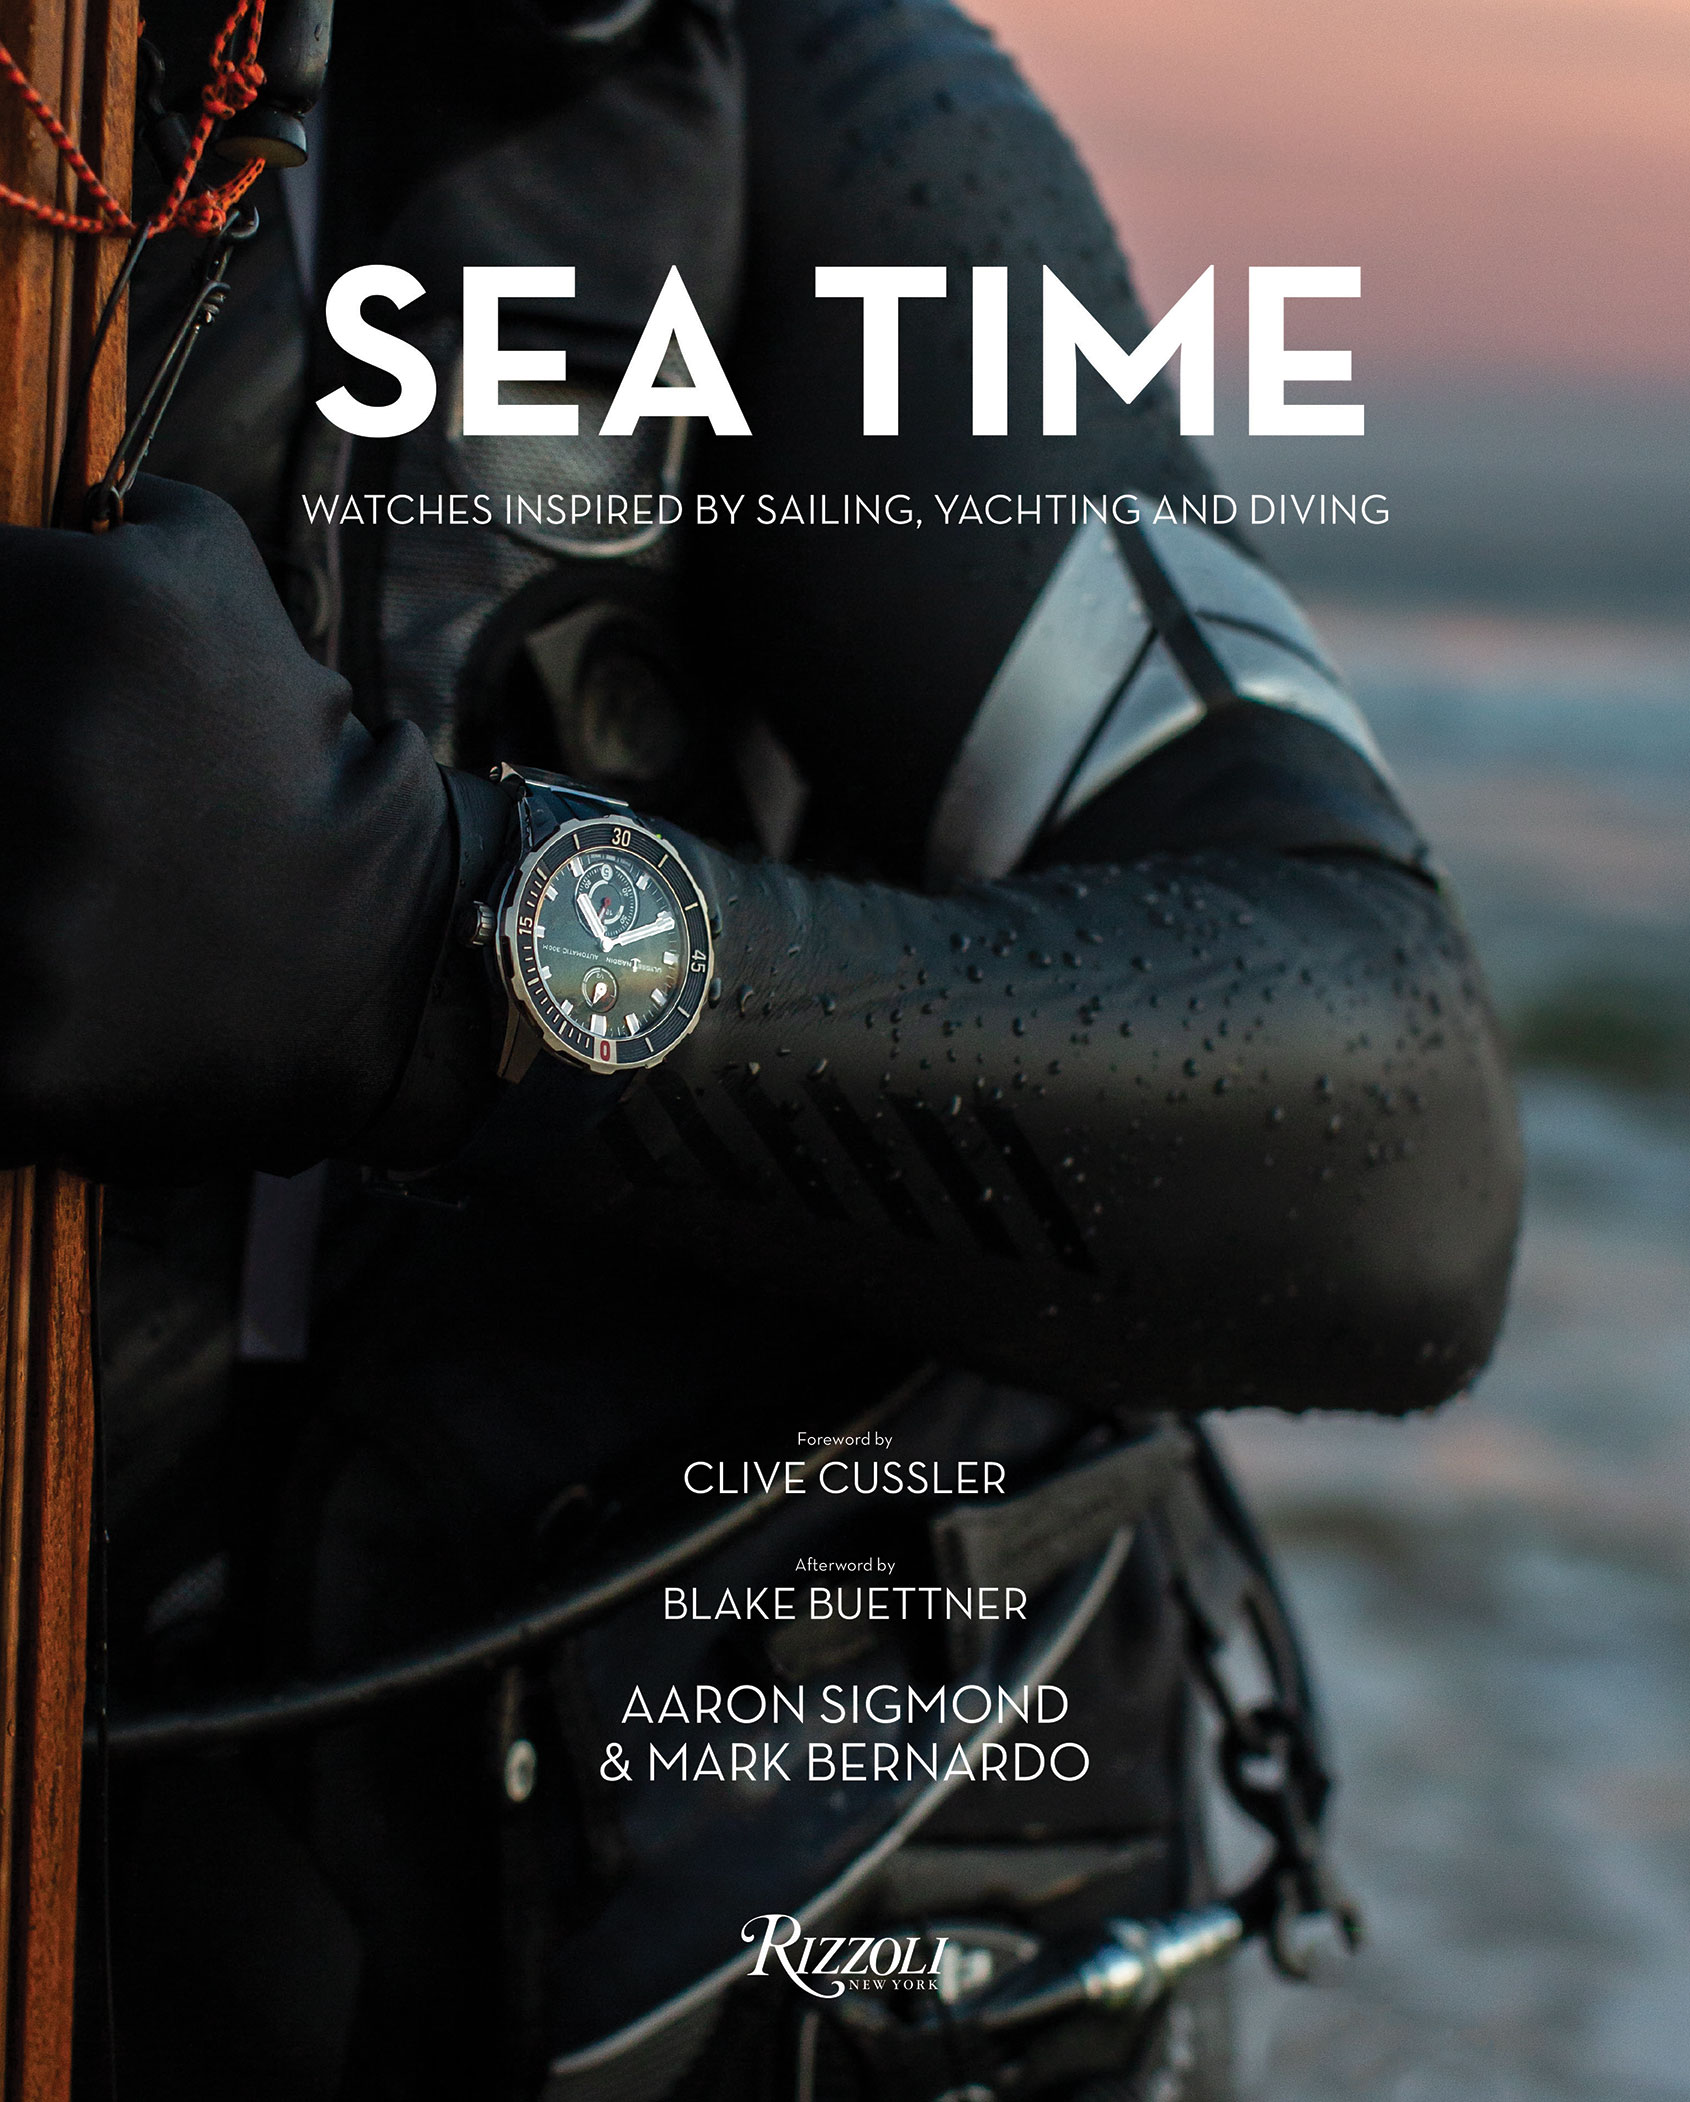 RECOMMENDED READING: Sea Time: Watches Inspired by Sailing, Yachting and Diving